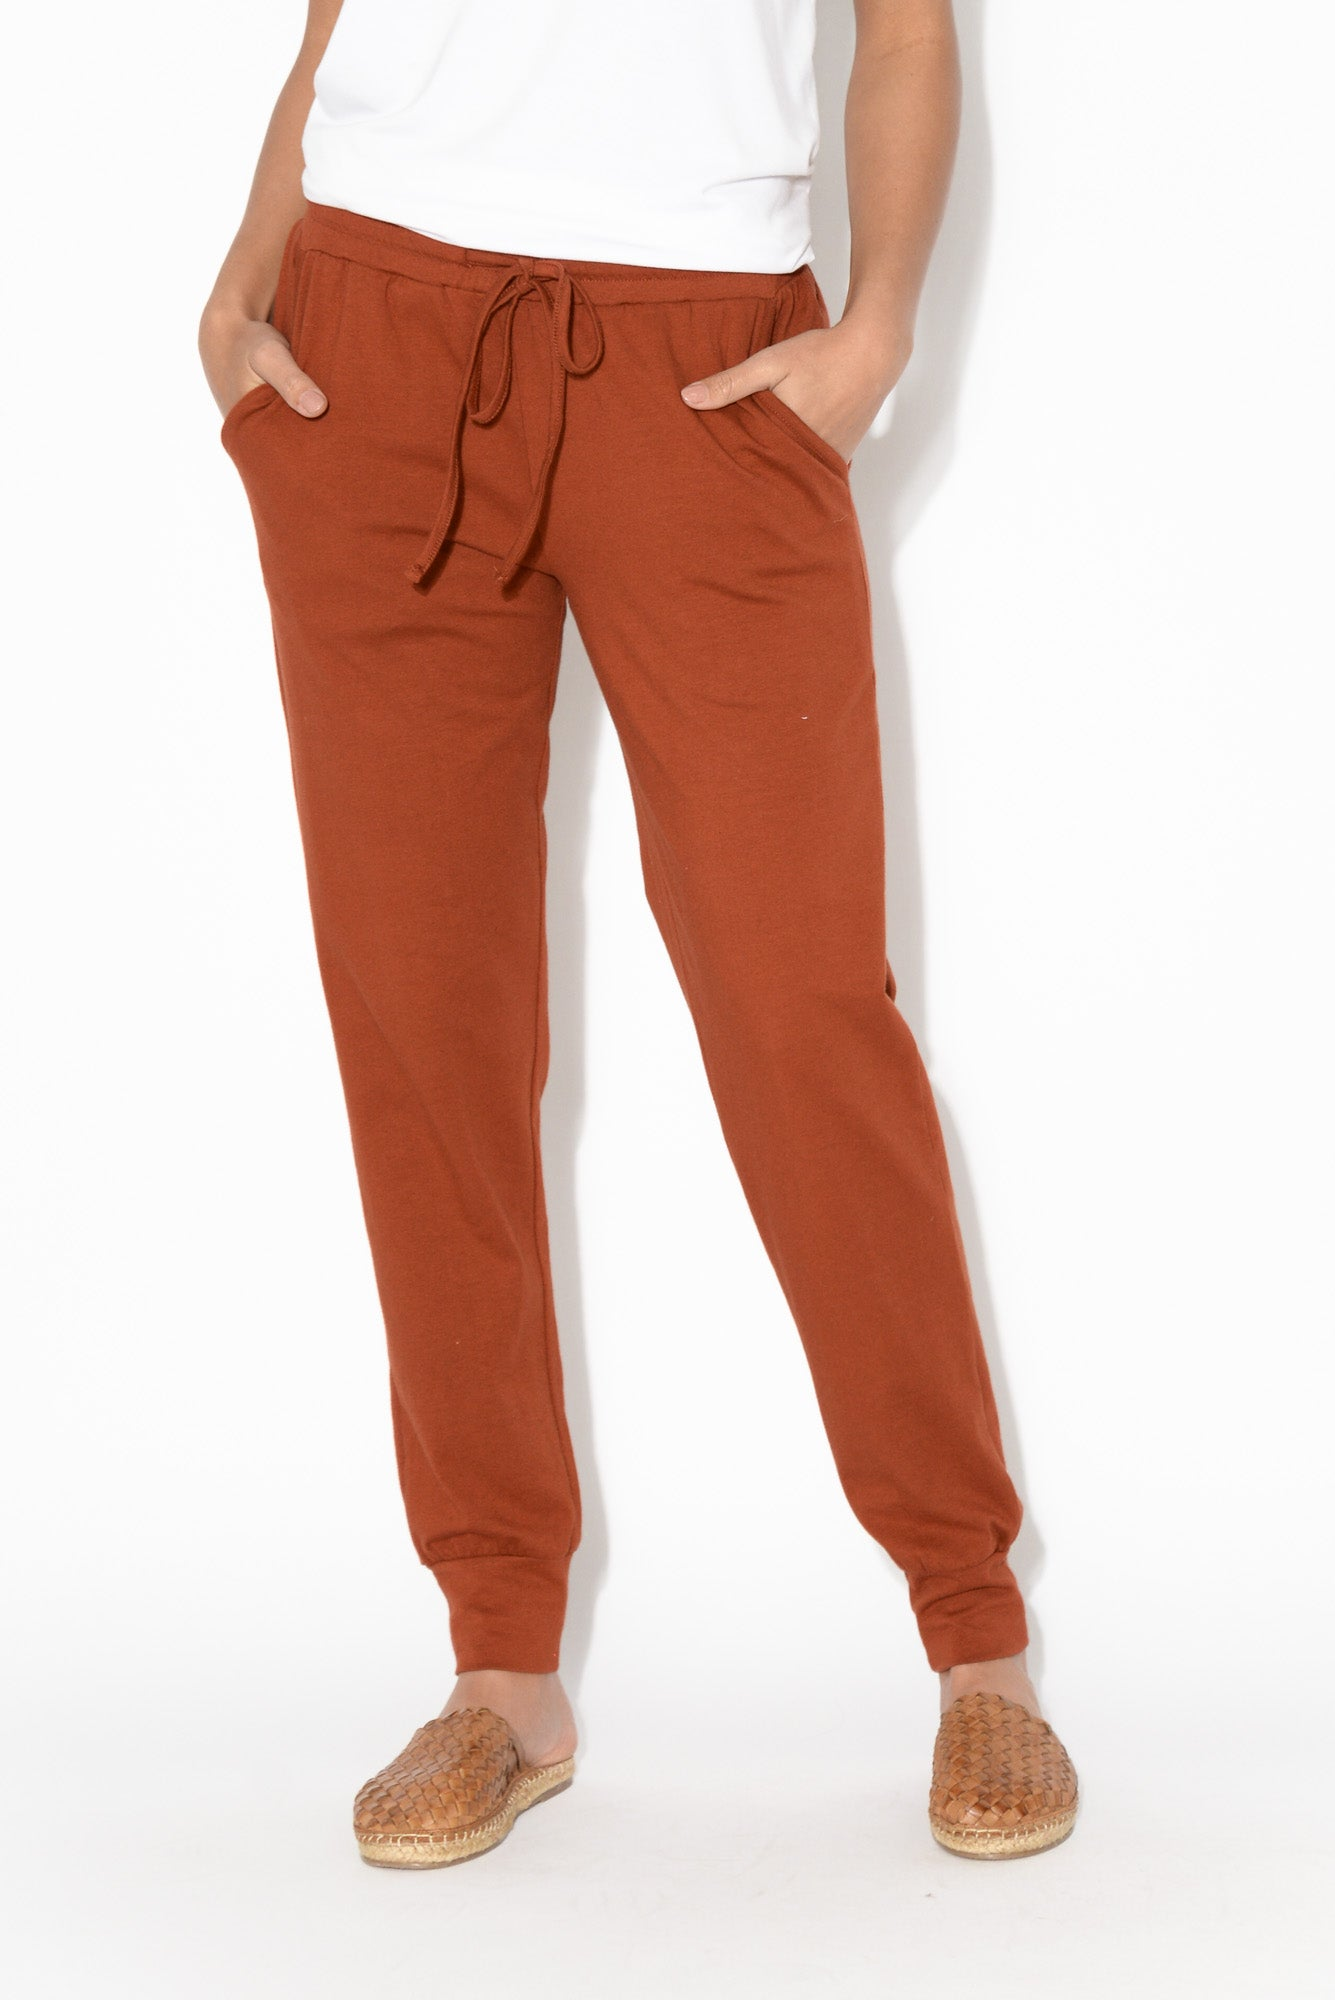 Rust Everyday Tie Pant